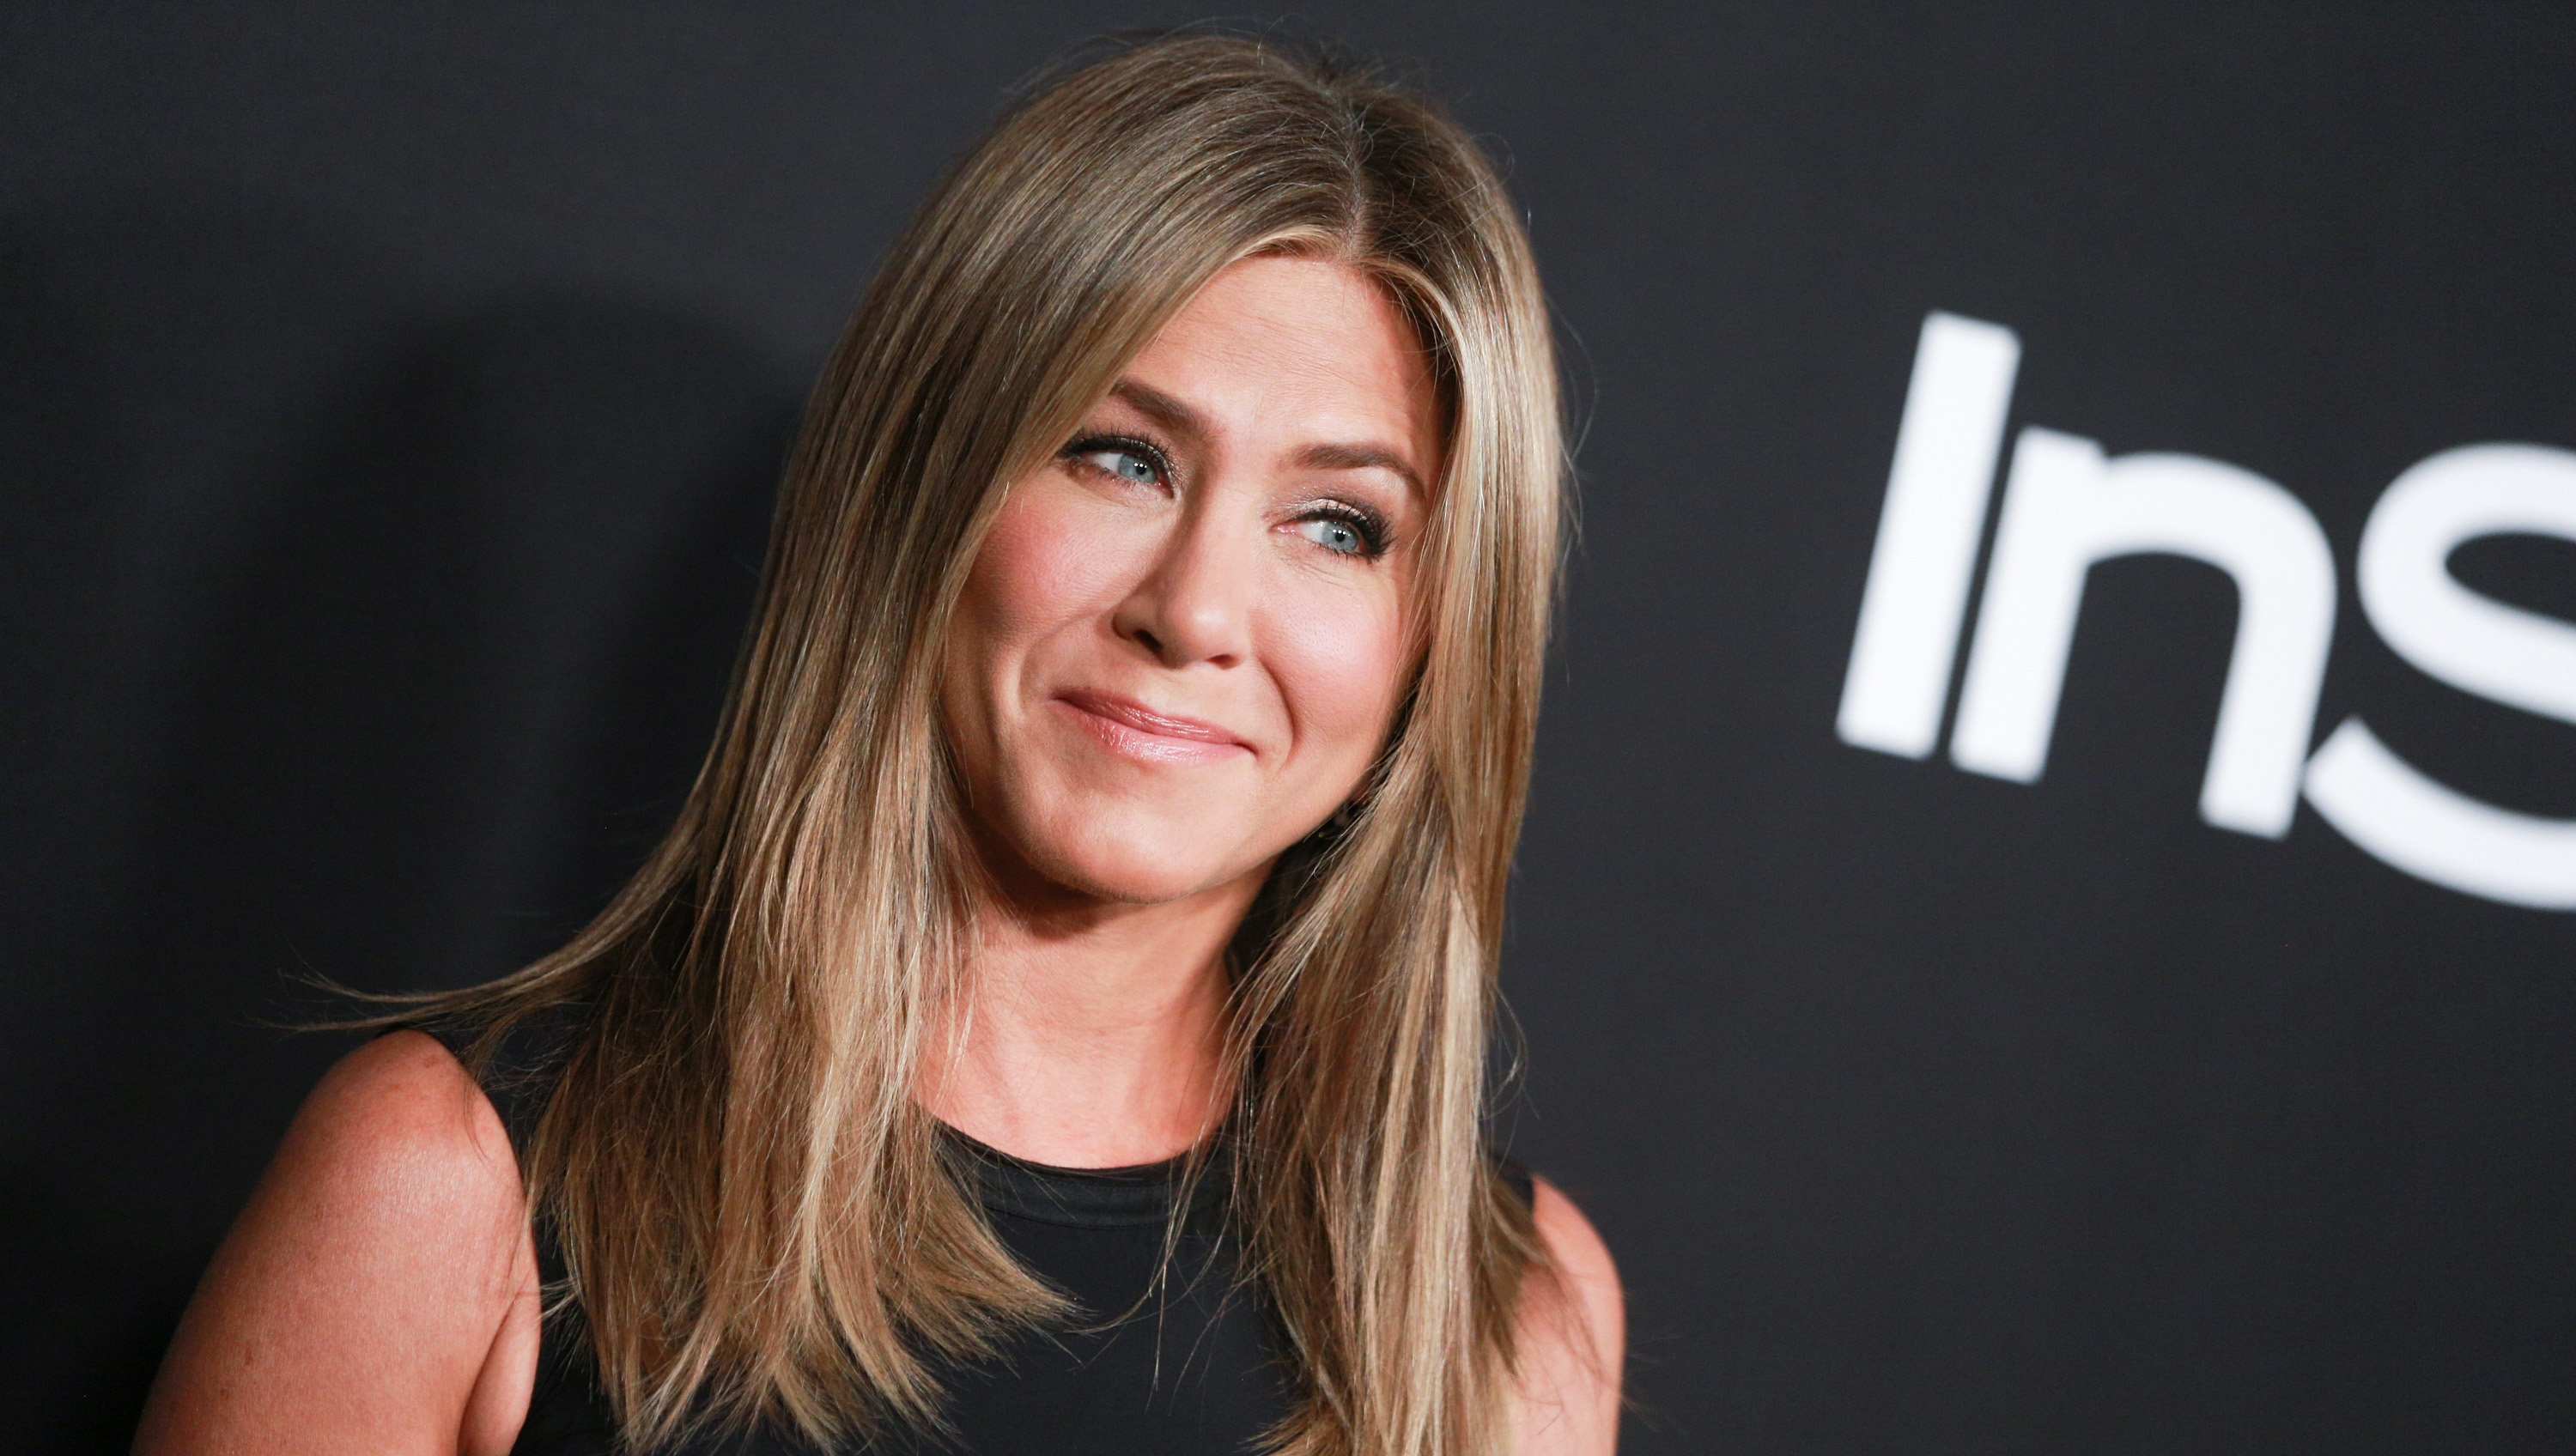 Jennifer Aniston, InStyle Awards, Red Carpet, Smiling, Black Dress